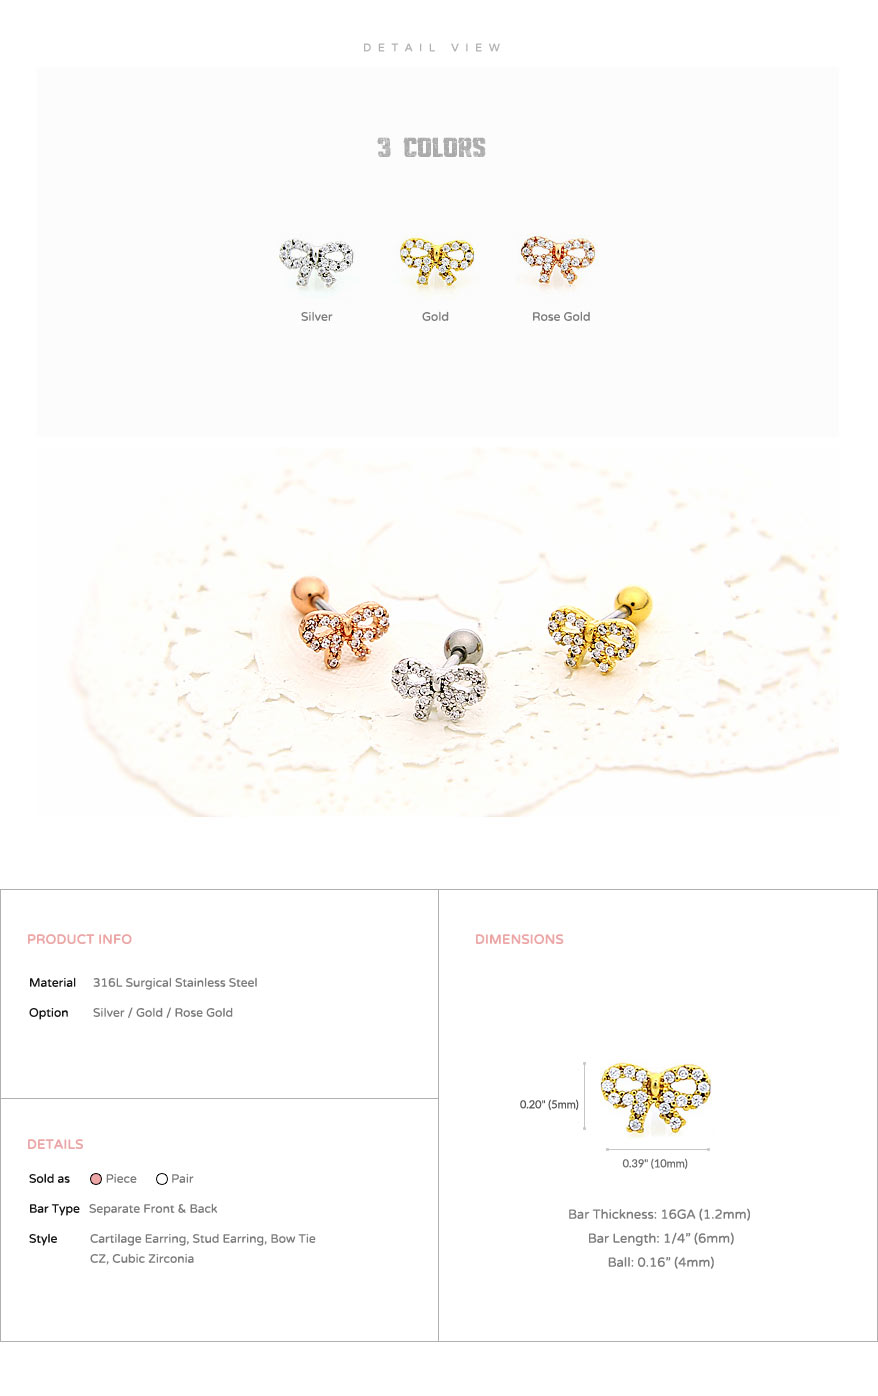 ear_studs_piercing_cartilage_earrings_16g_316l_surgical_korean_asian_style_jewelry_barbell_rose_gold_helix_conch_labret_tragus_bow_tie_ribbon_5